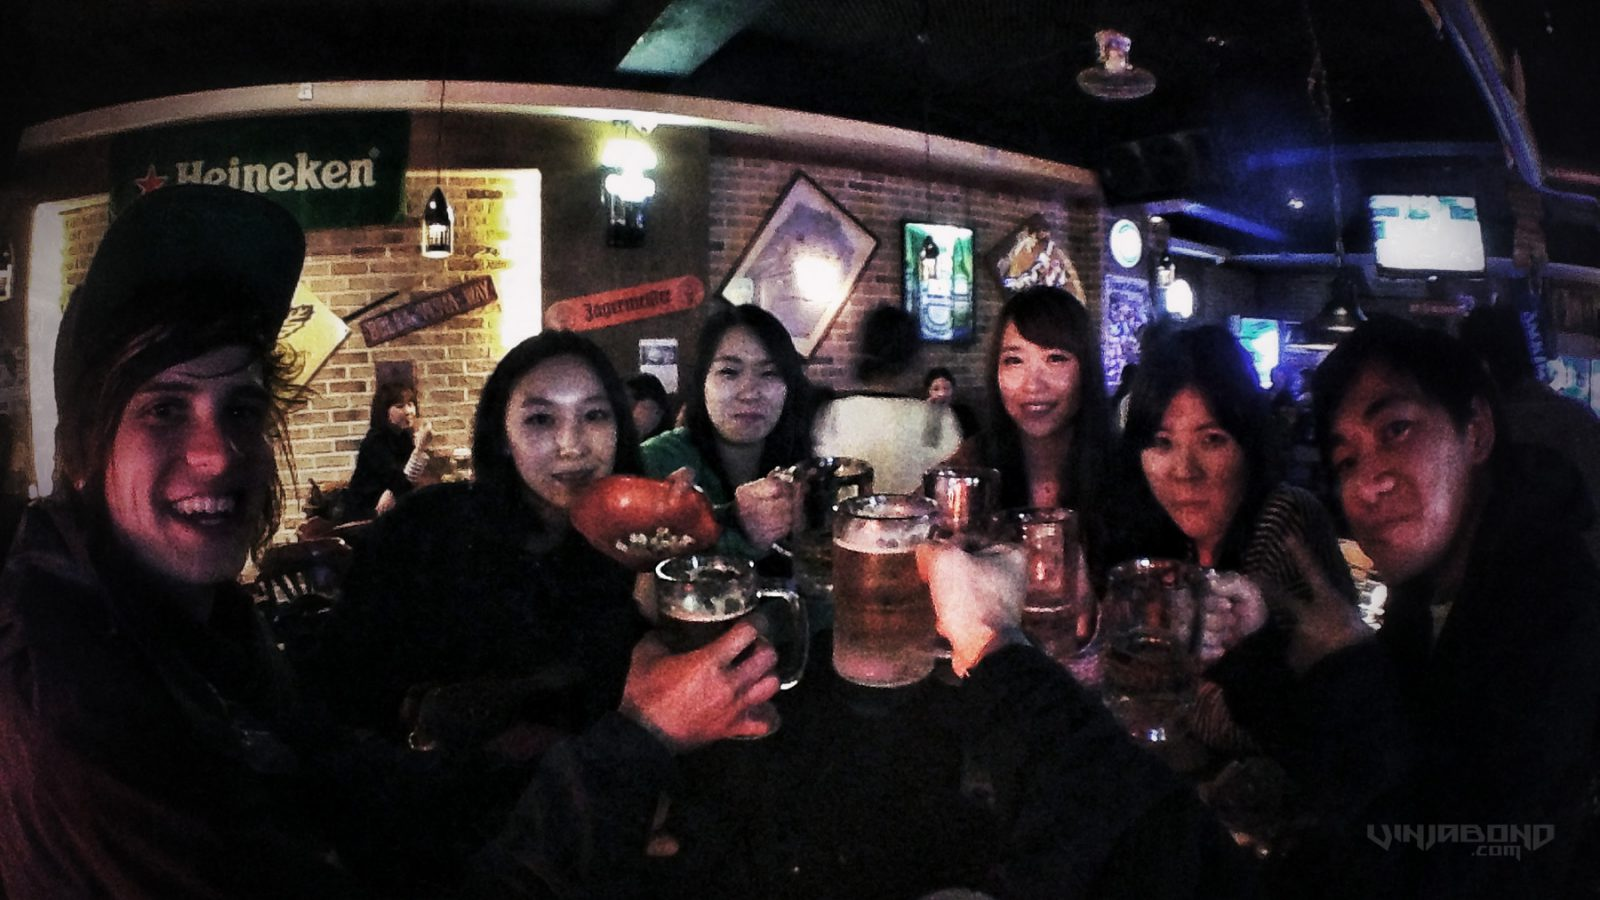 - At a Bar w/ Local Girls and Other Travelers in Hongdae - VINJABOND